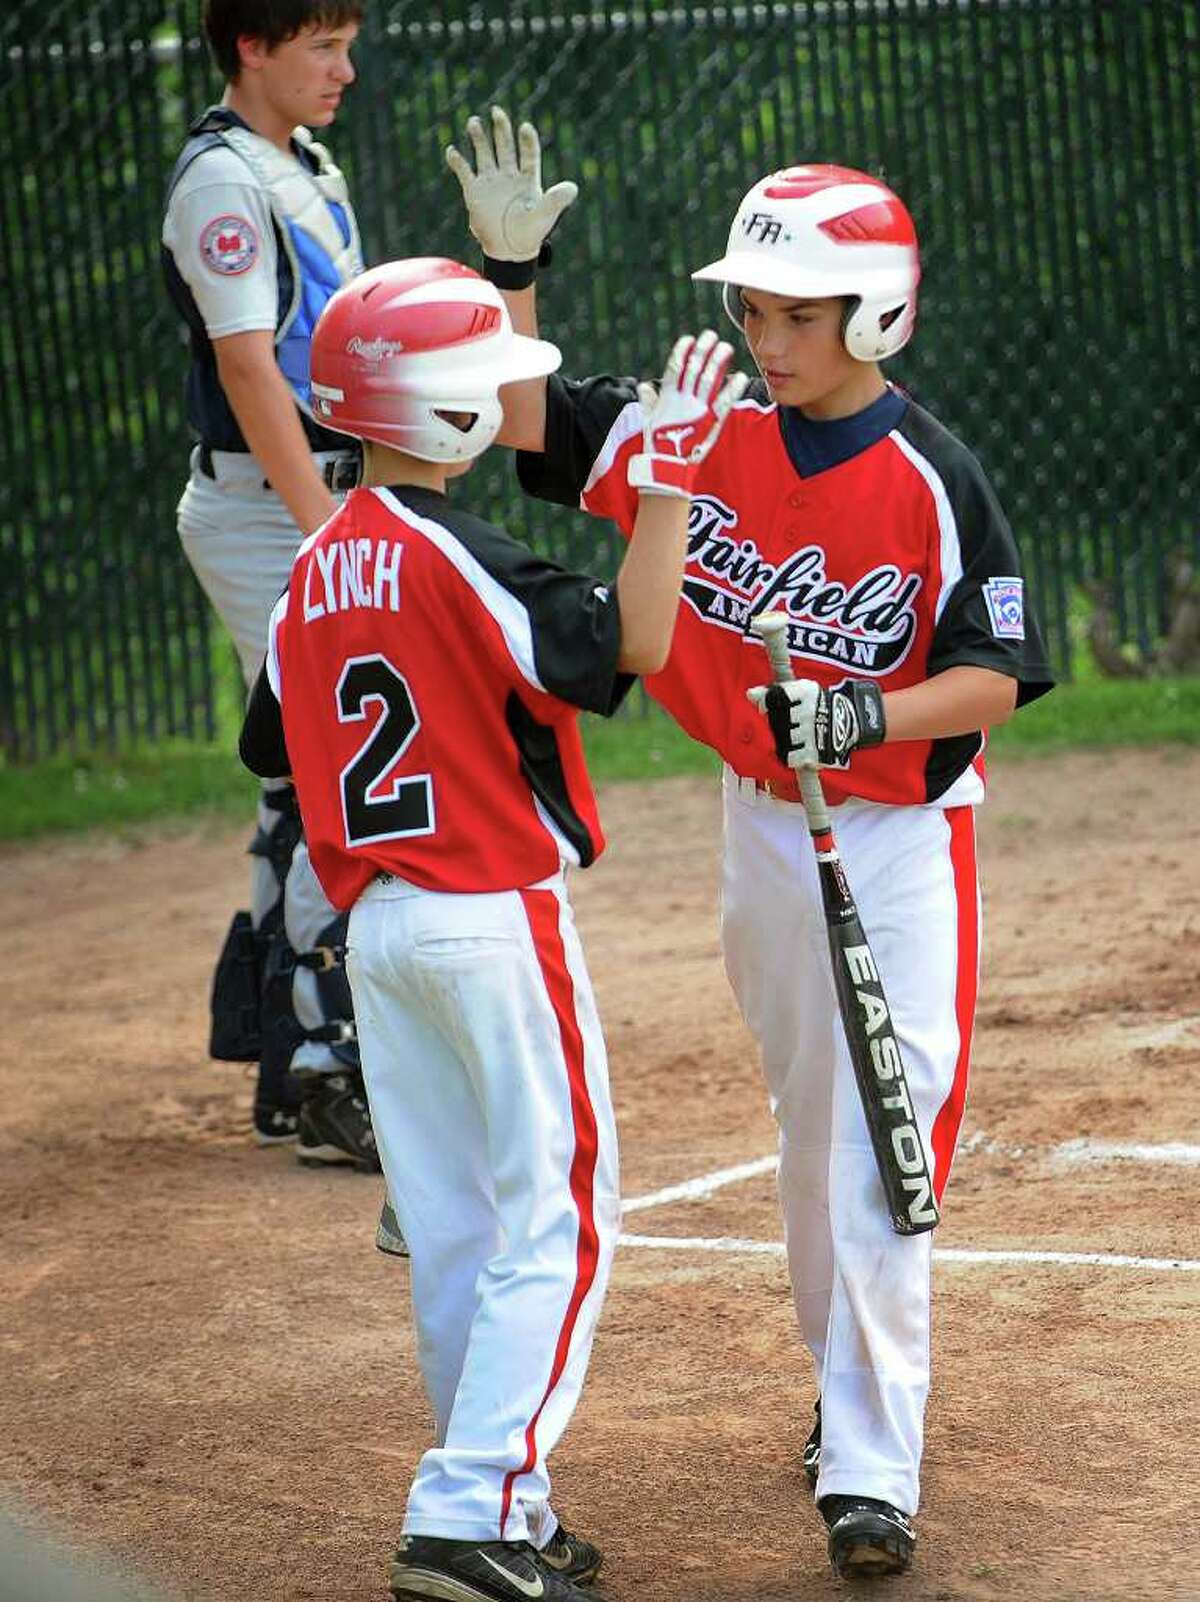 Fairfield American's Connor Lynch, left, greets teammate Sean Guiterrez at the plate after a first inning home run in their Little League matchup with Westport at Blackham School in Bridgeport on Monday, July 11, 2011.